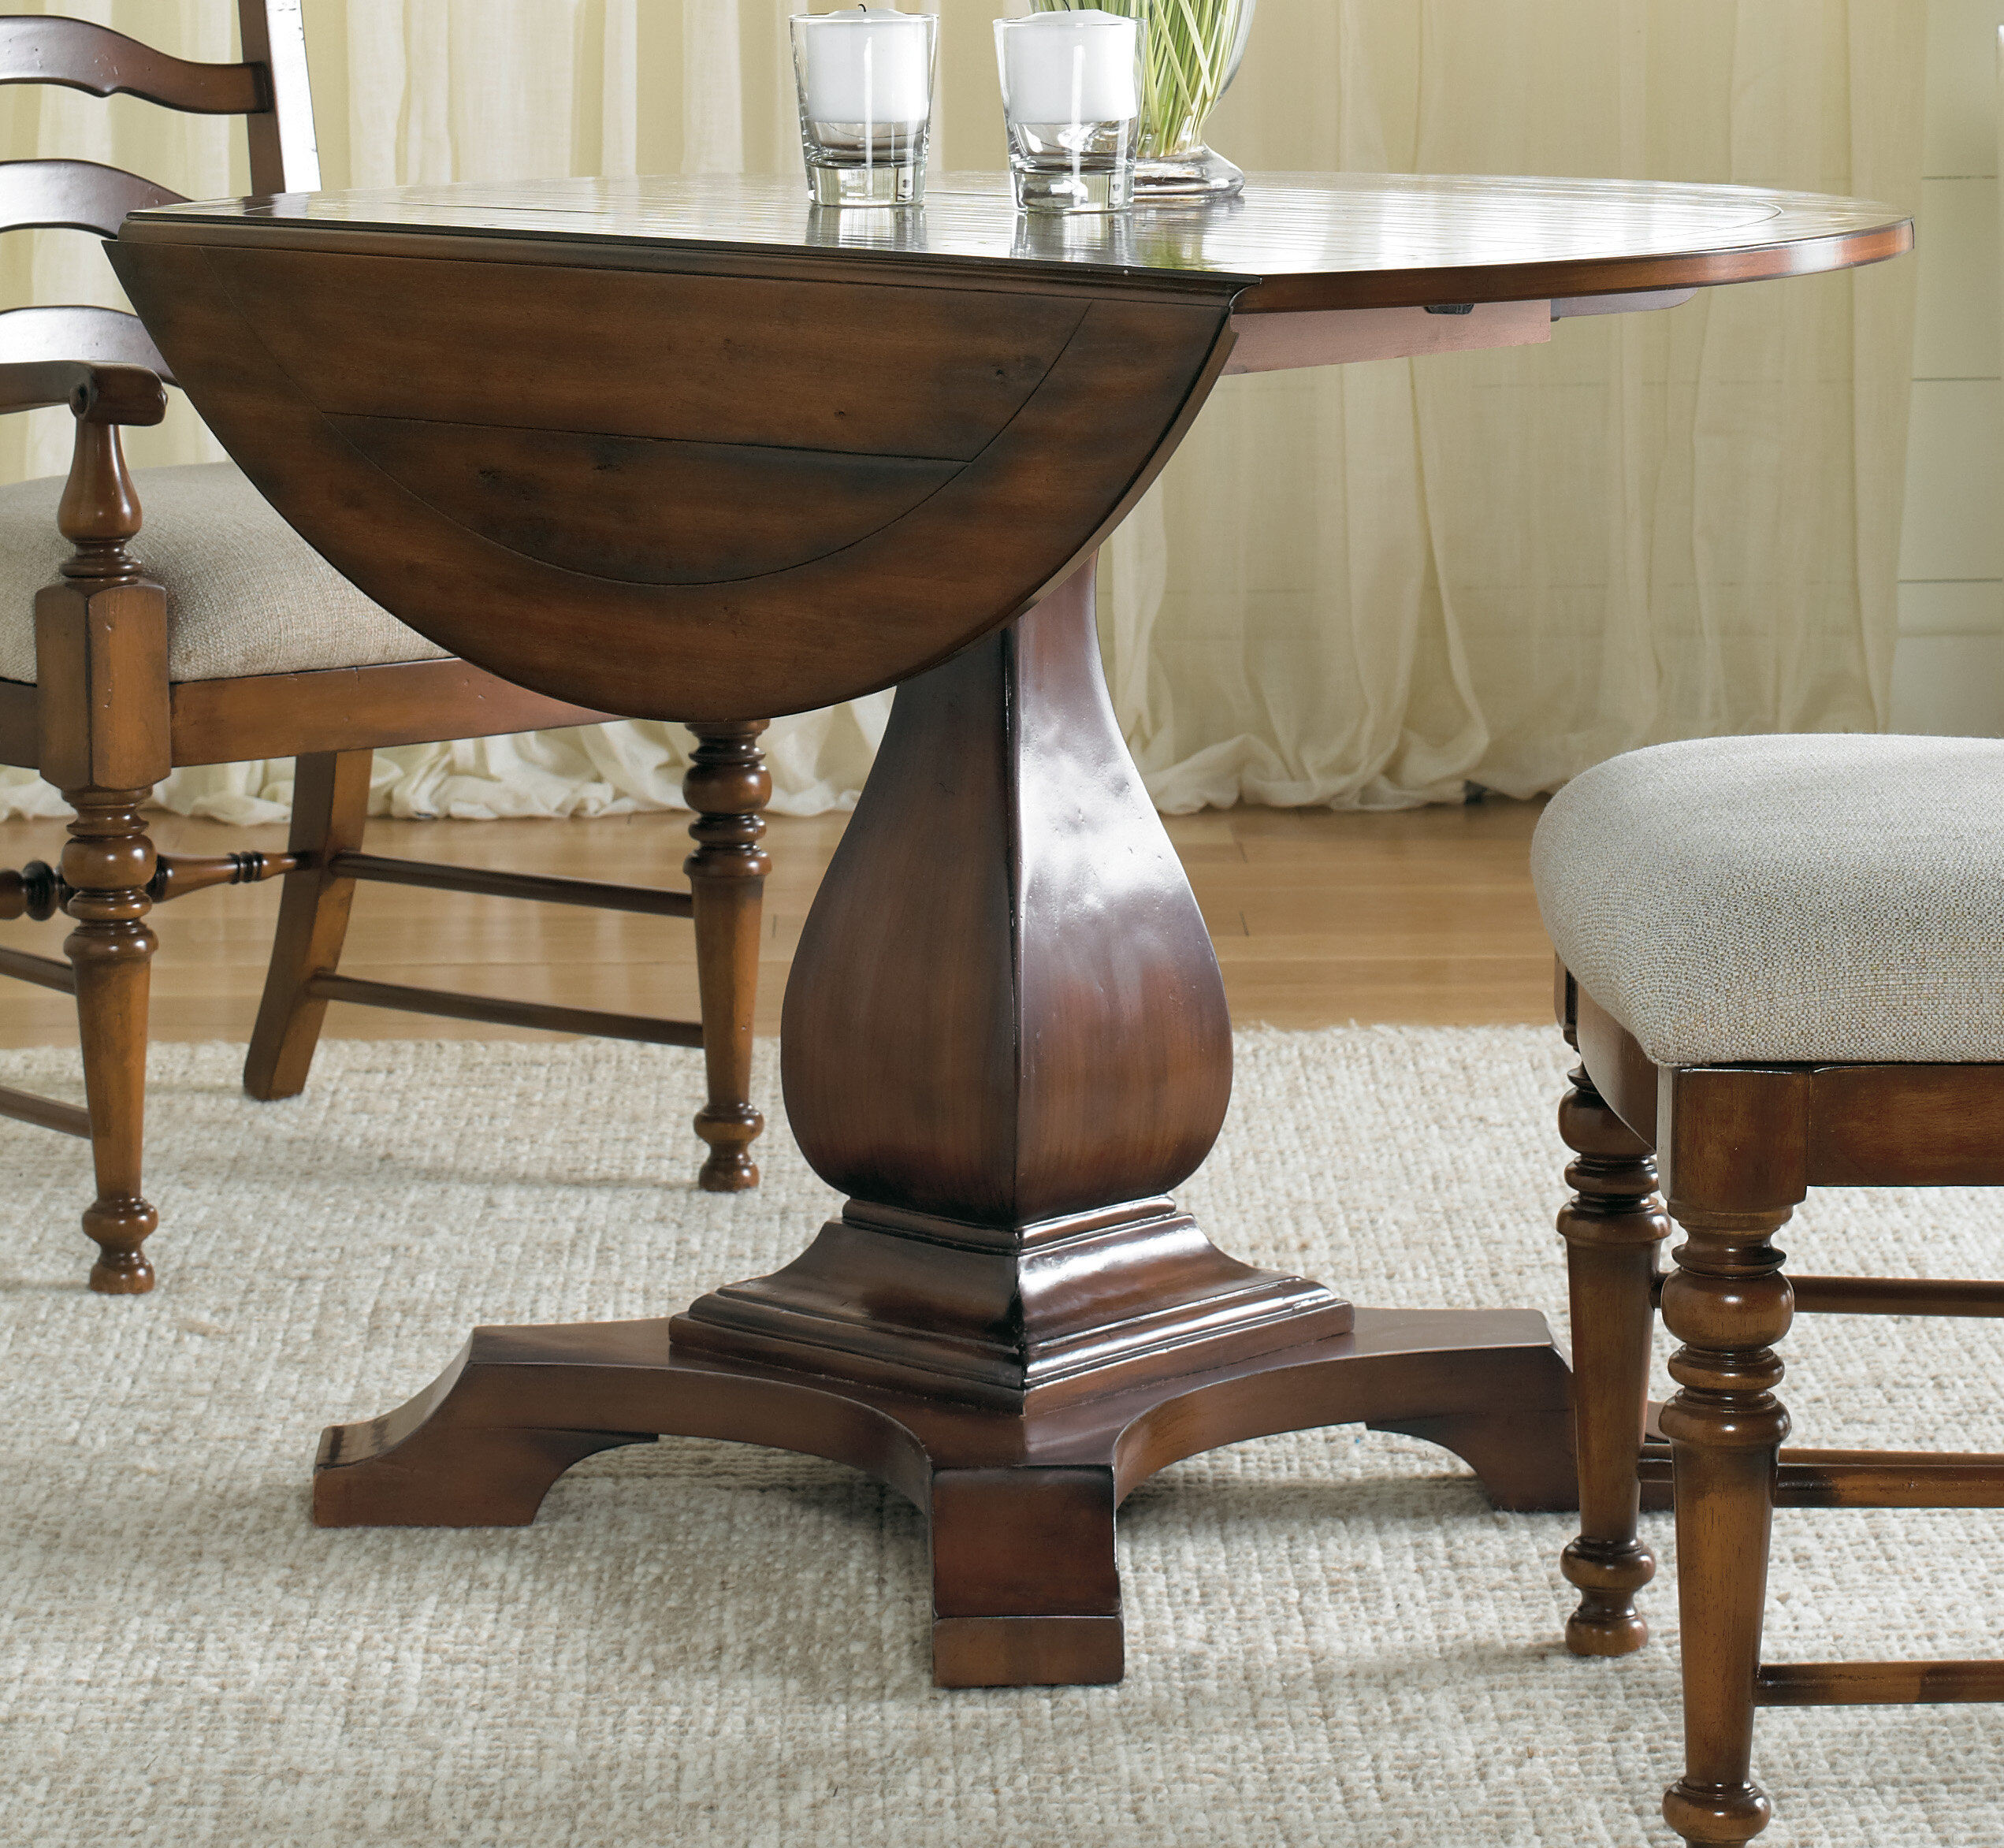 Hooker Furniture Waverly Place Round Drop Leaf Dining Table Reviews Wayfair